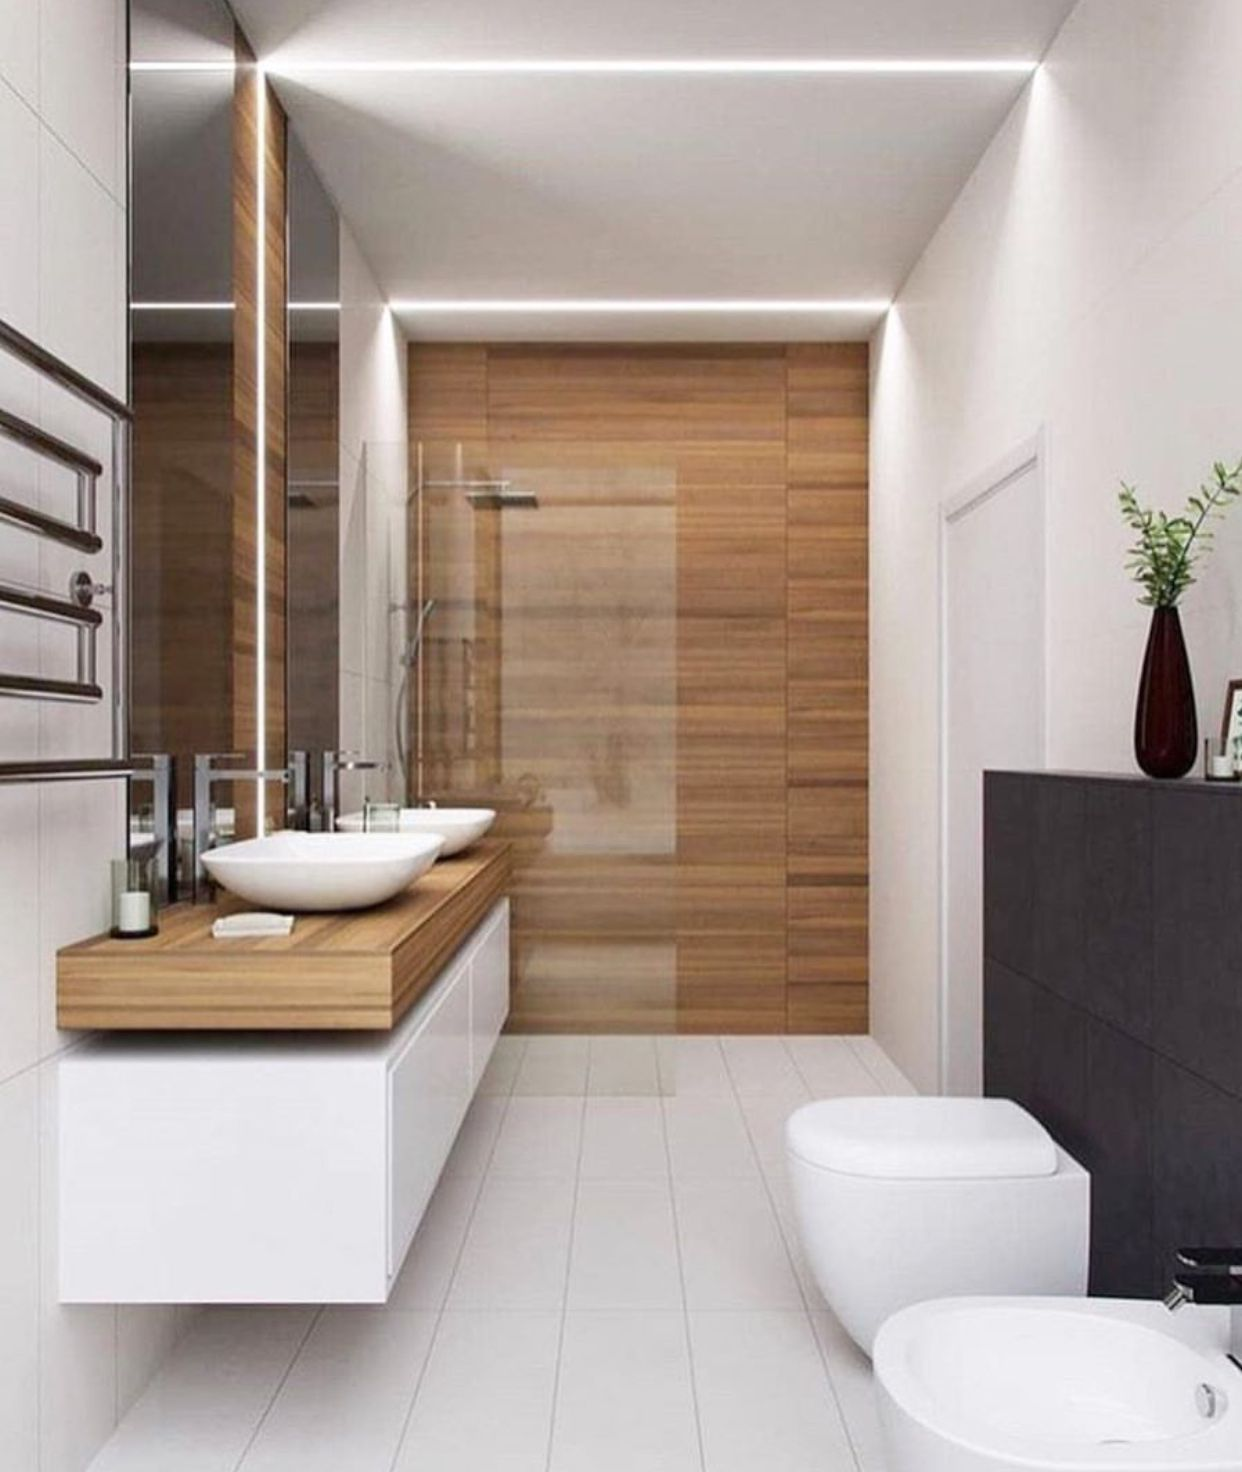 10 Small Bathroom Ideas For Minimalist Houses